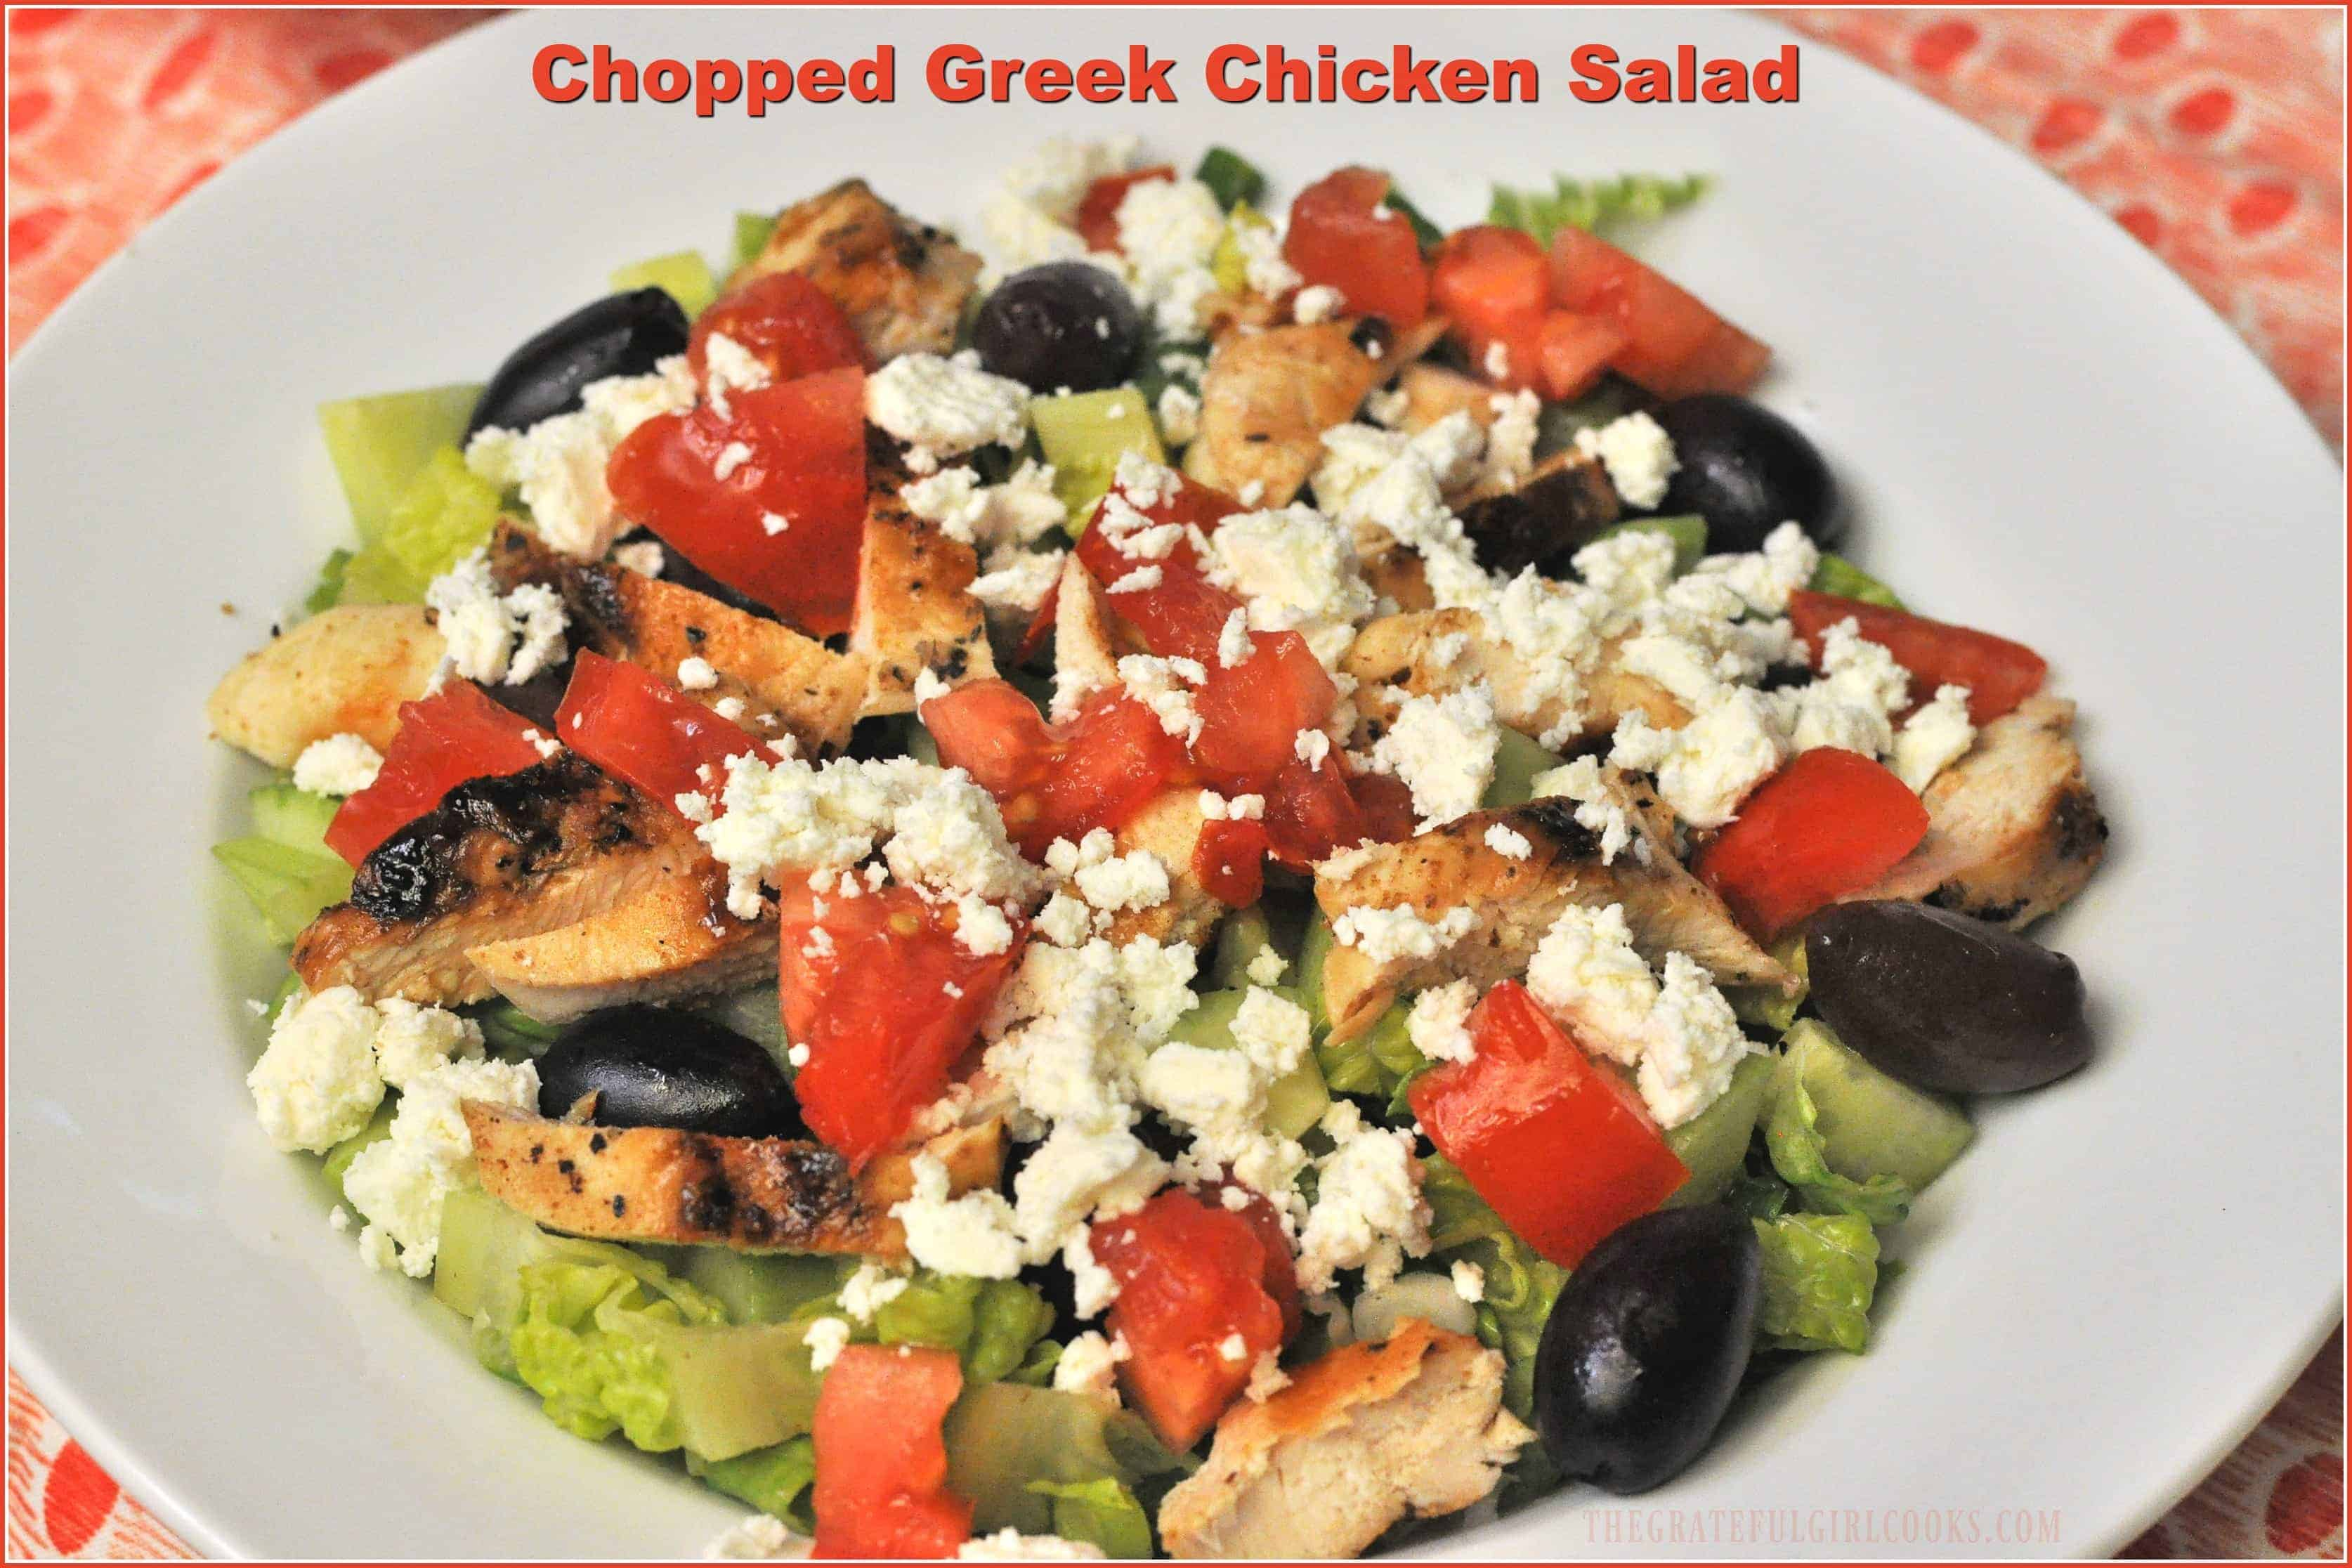 Chopped Greek Chicken Salad / The Grateful Girl Cooks! You will love this Weight Watchers recipe for Chopped Greek Chicken Salad, with grilled chicken, feta cheese, kalamata olives, crunchy cucumbers, and a light vinaigrette!